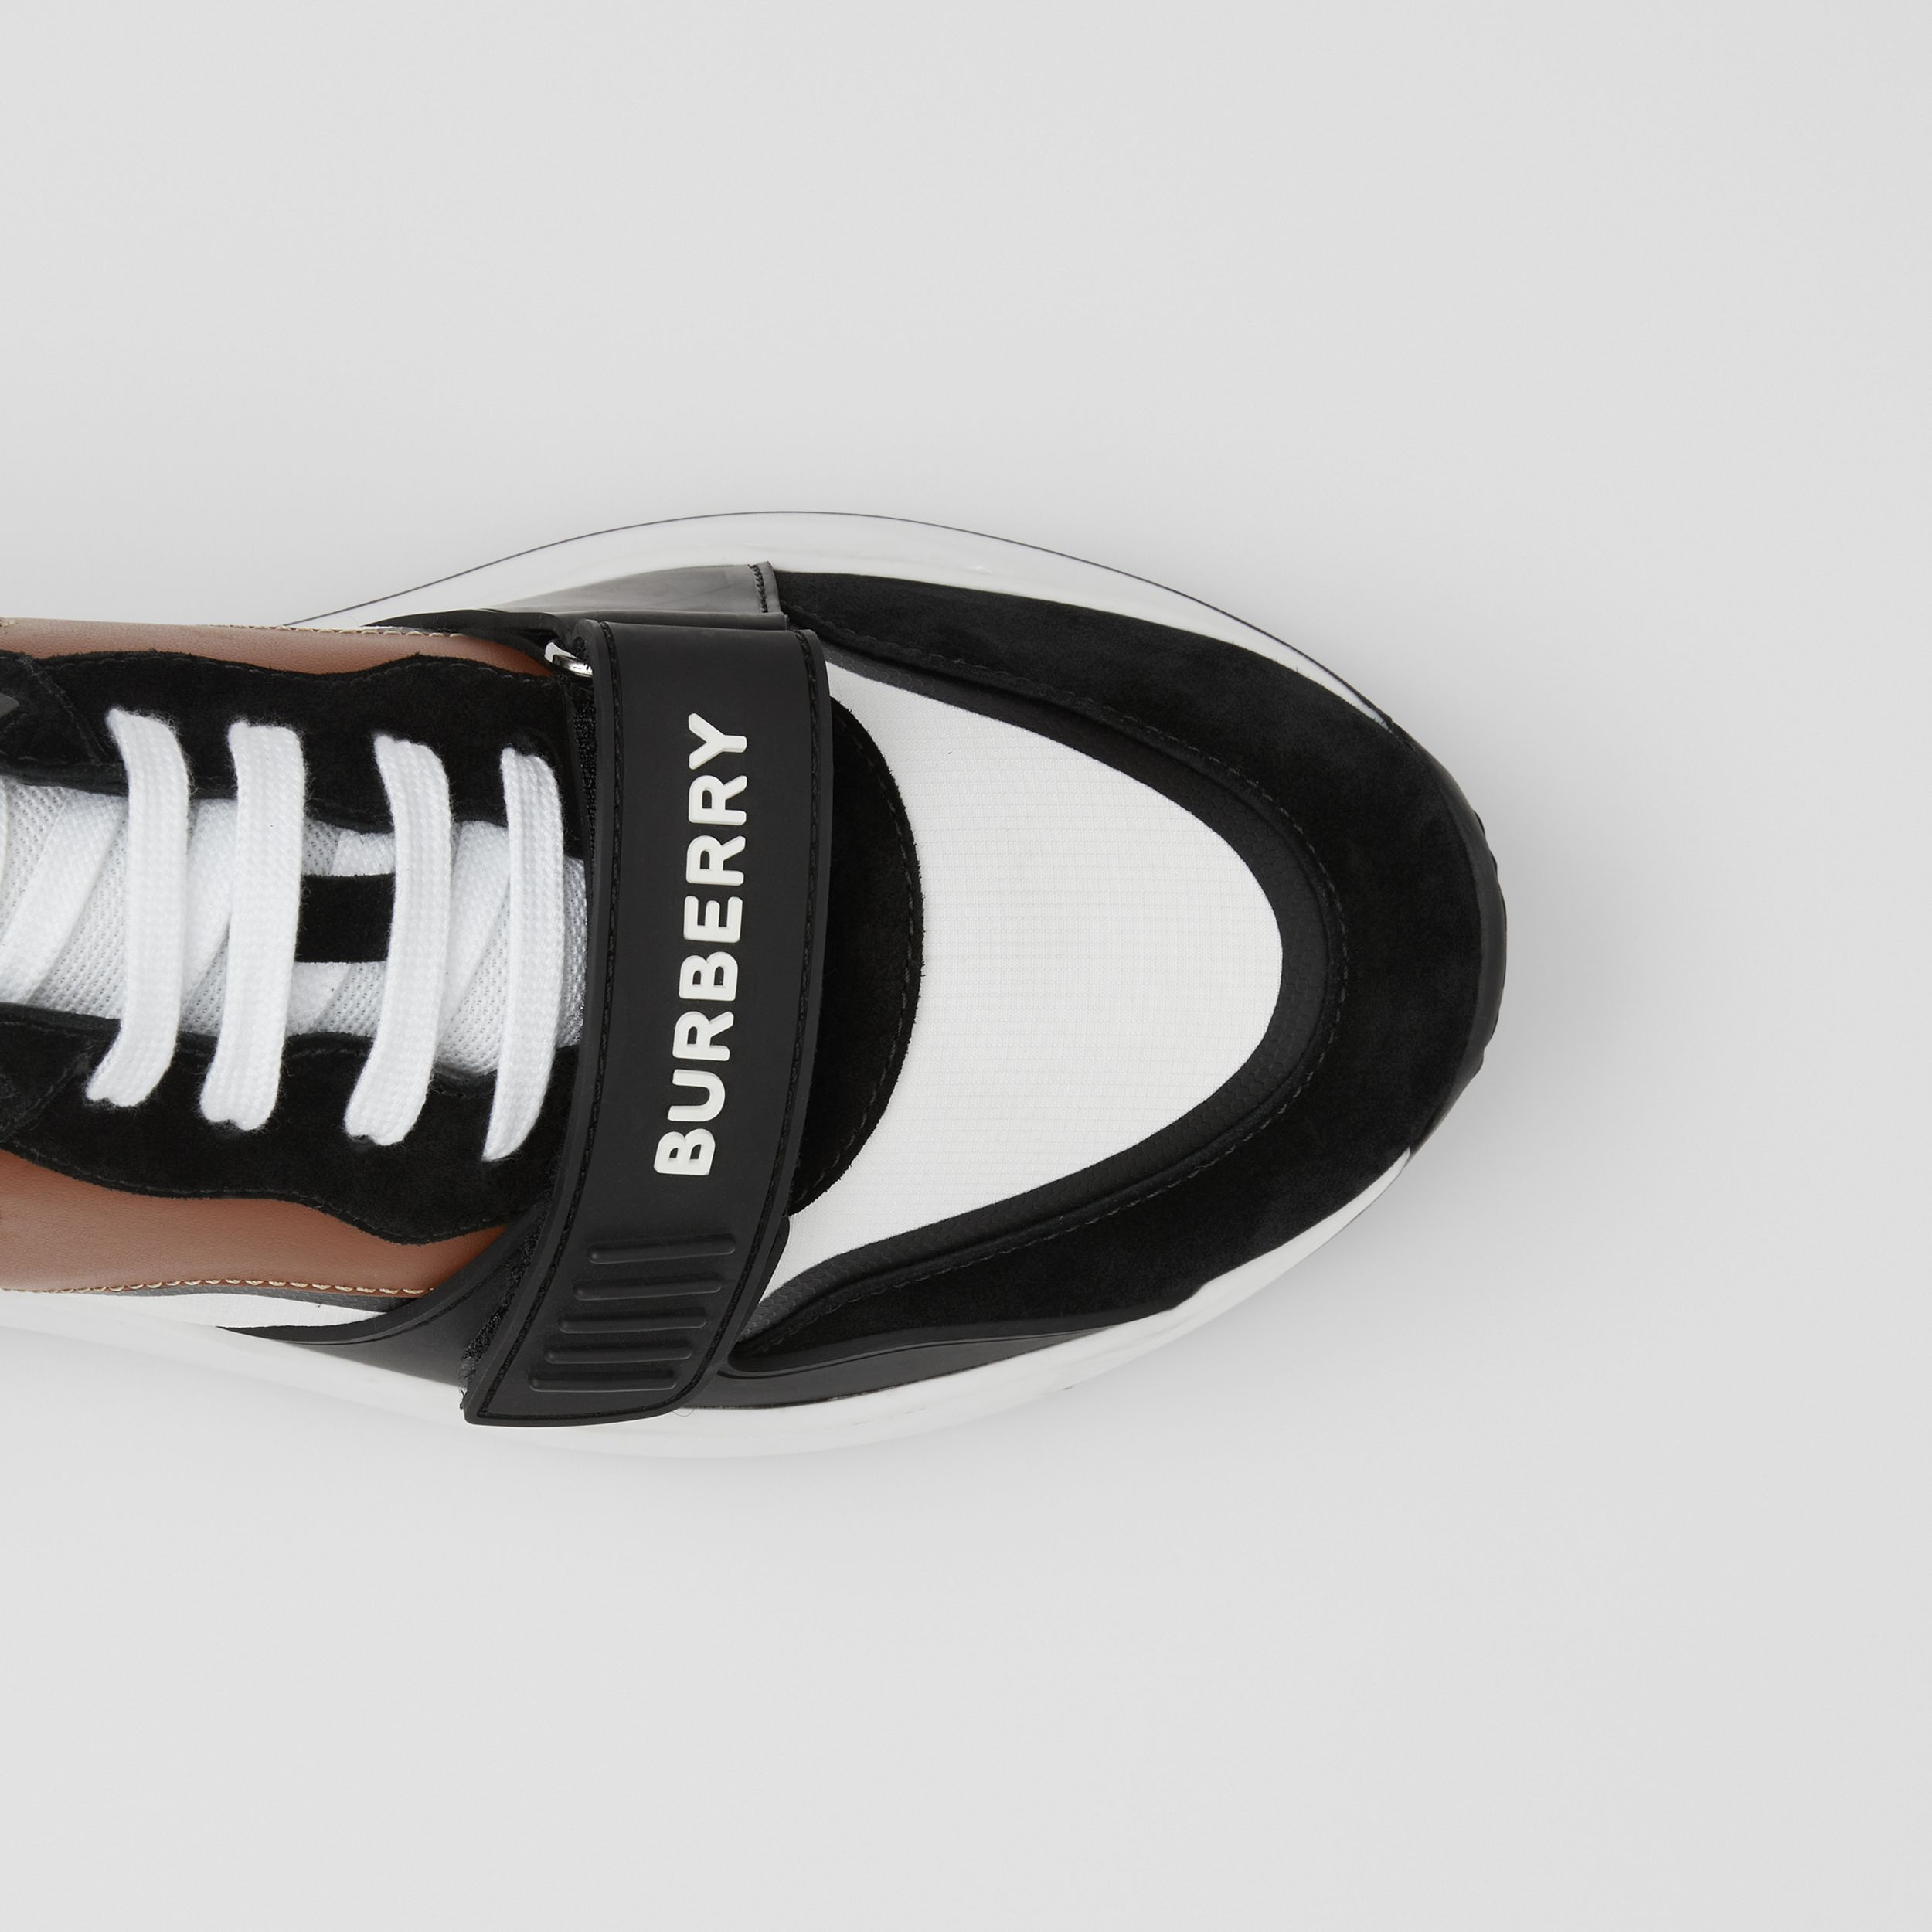 Leather, Suede and Vintage Check Sneakers in Black/archive Beige - Men | Burberry - 2